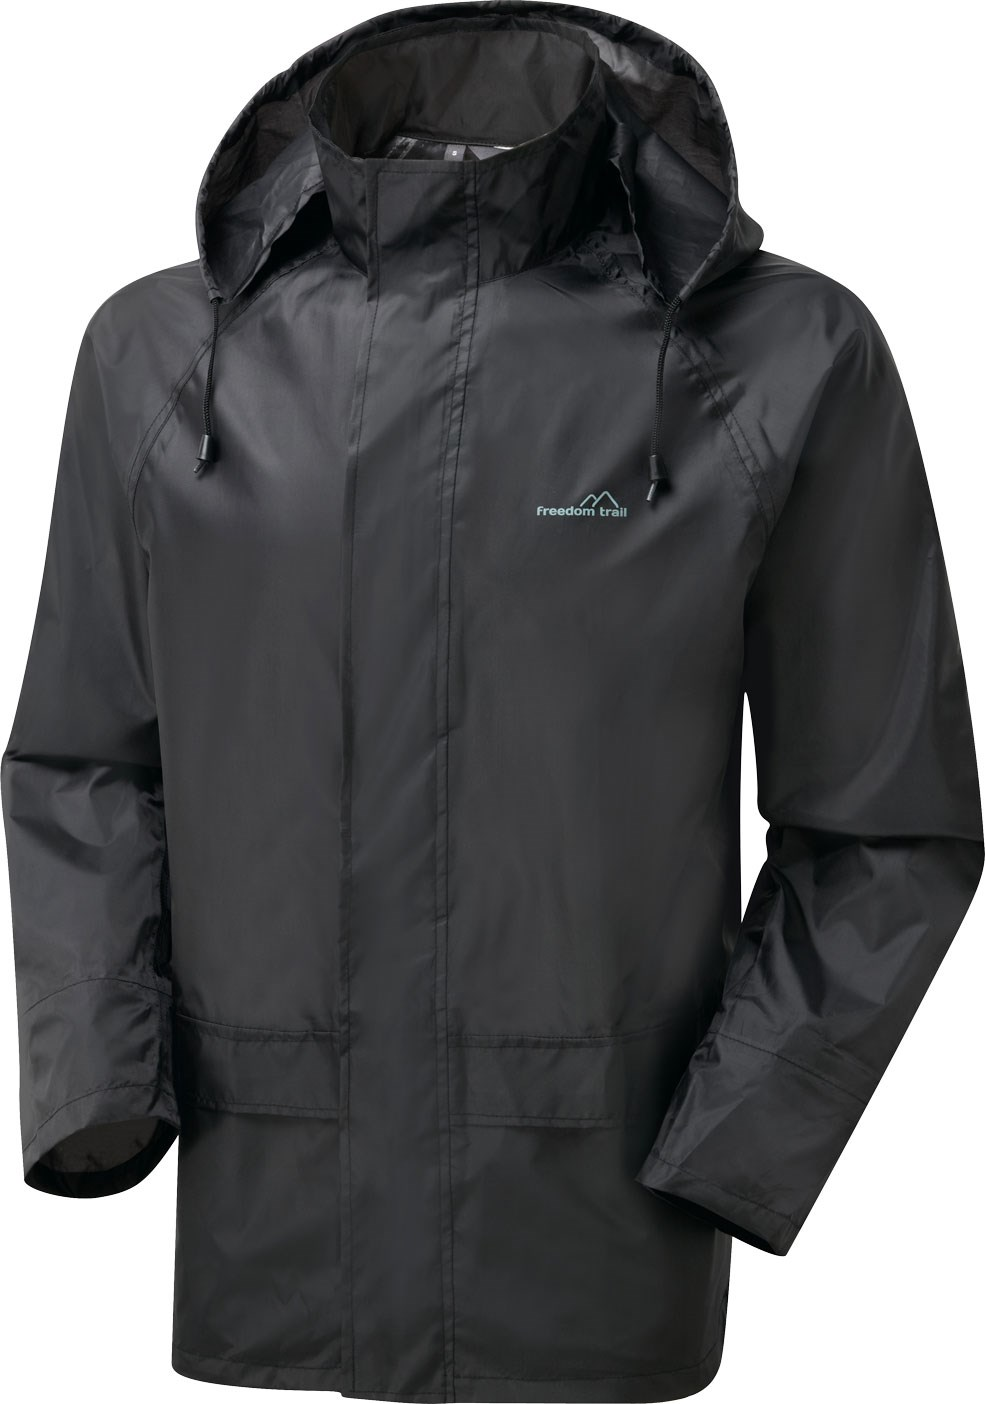 Waterproof Walking Jackets at GO Outdoors UK